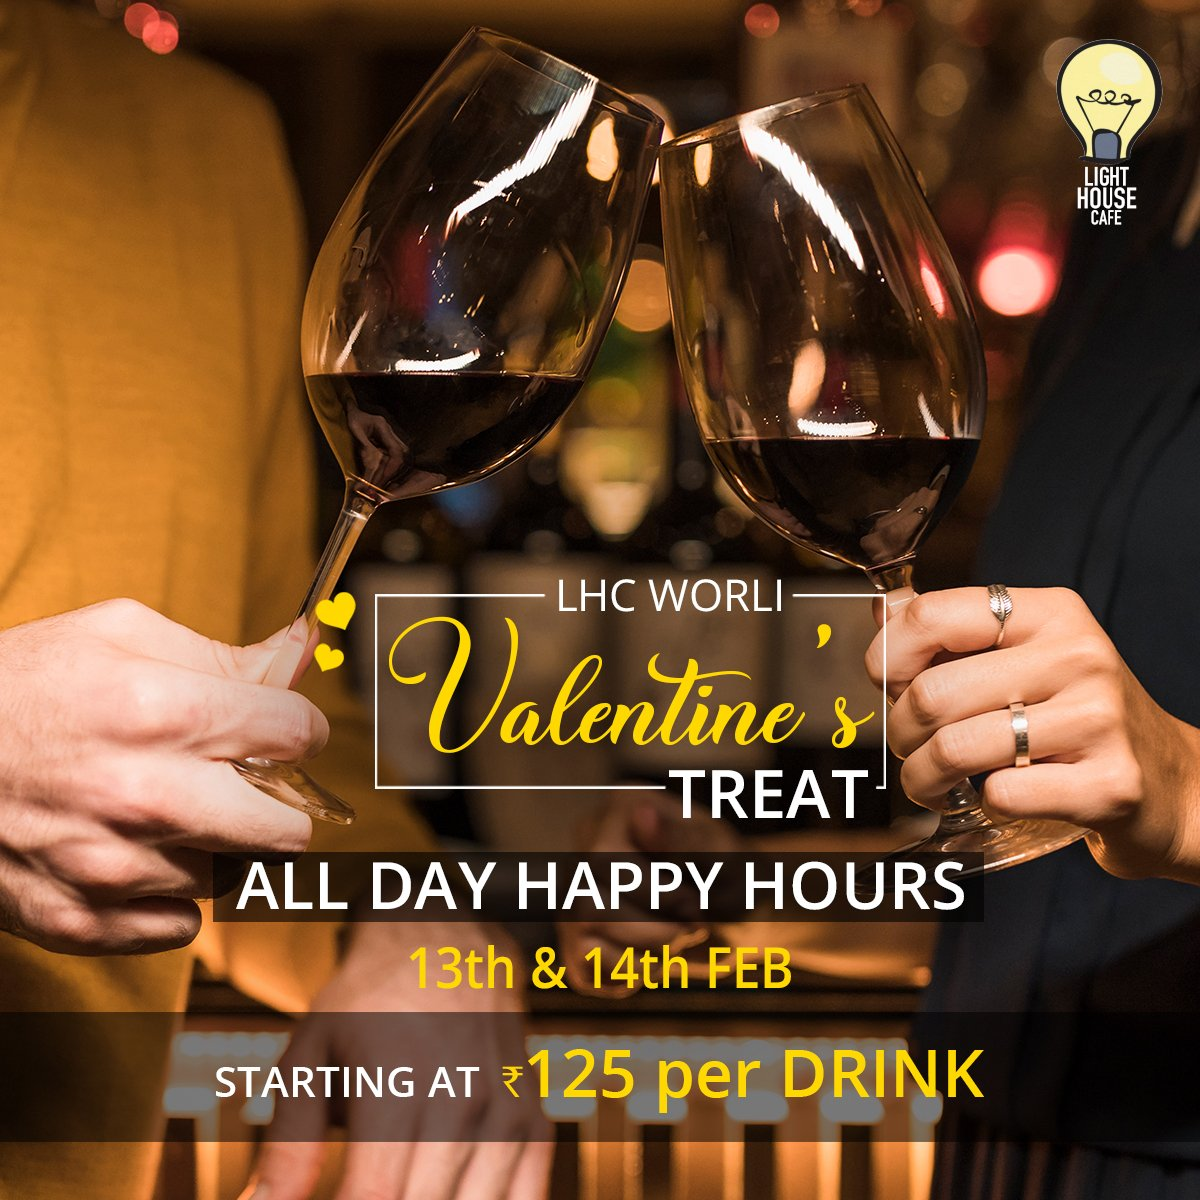 Every love story is unique and beautiful, make it more memorable with our all day long Happy Hours on 13th & 14th Feb starting at Rs. 125 per Drink only at Light House Cafe Mumbai  #LHC #Worli #Mumbai #Zomato #Blogpost #bloggers #Weekday #CurlyTales #Weekends #Thingstodo